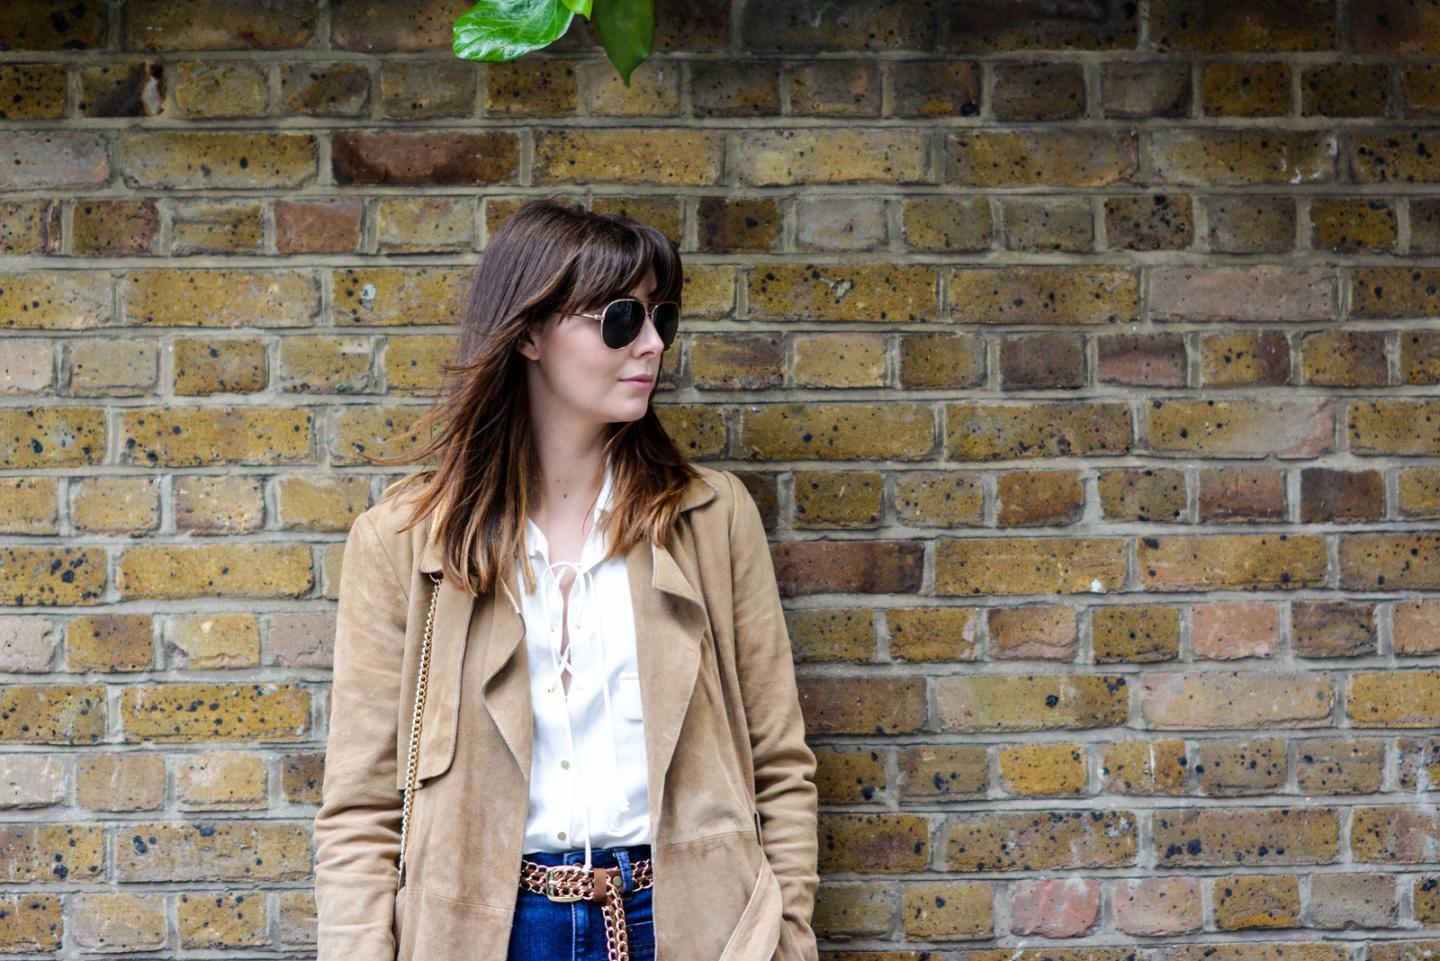 EJSTYLE - Suede trench coat by Gestuz, Zara lace up shirt, High waisted jeans, tan chain belt, gold aviator sunglasses